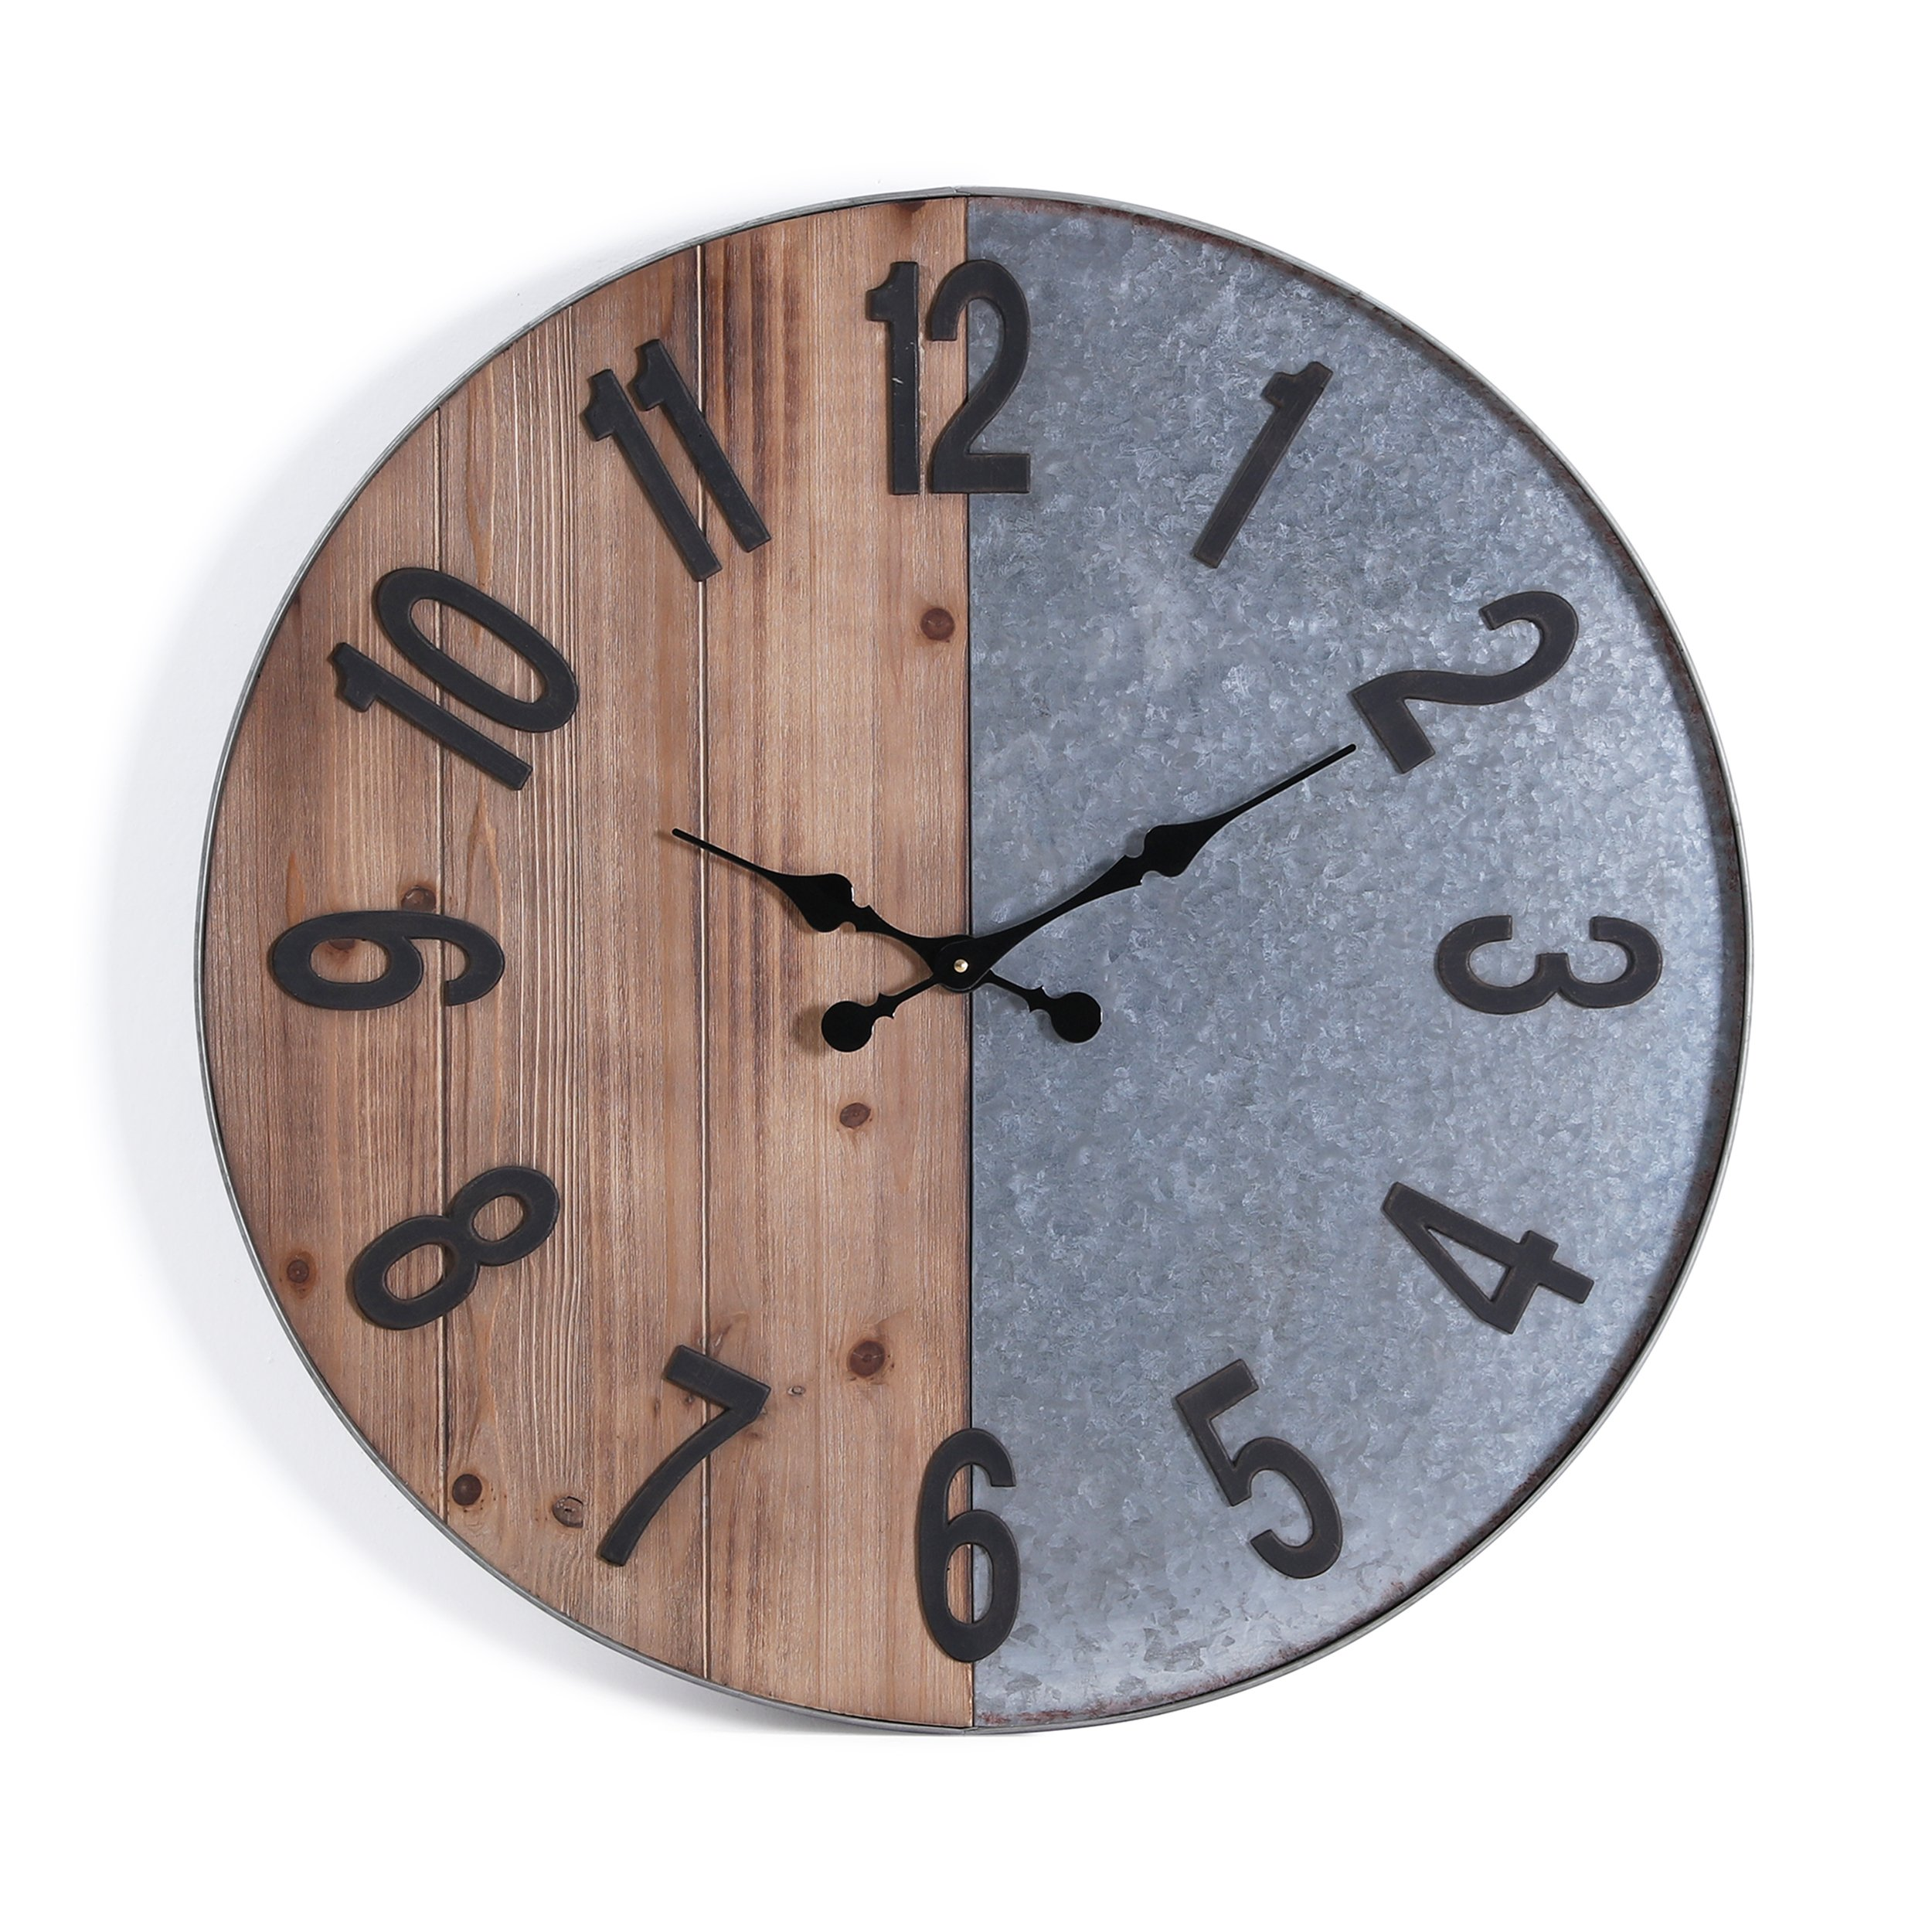 Furniture HotSpot – Industrial Wall Clock – Metal/Wood - 28'' W x 2'' D x 28'' H